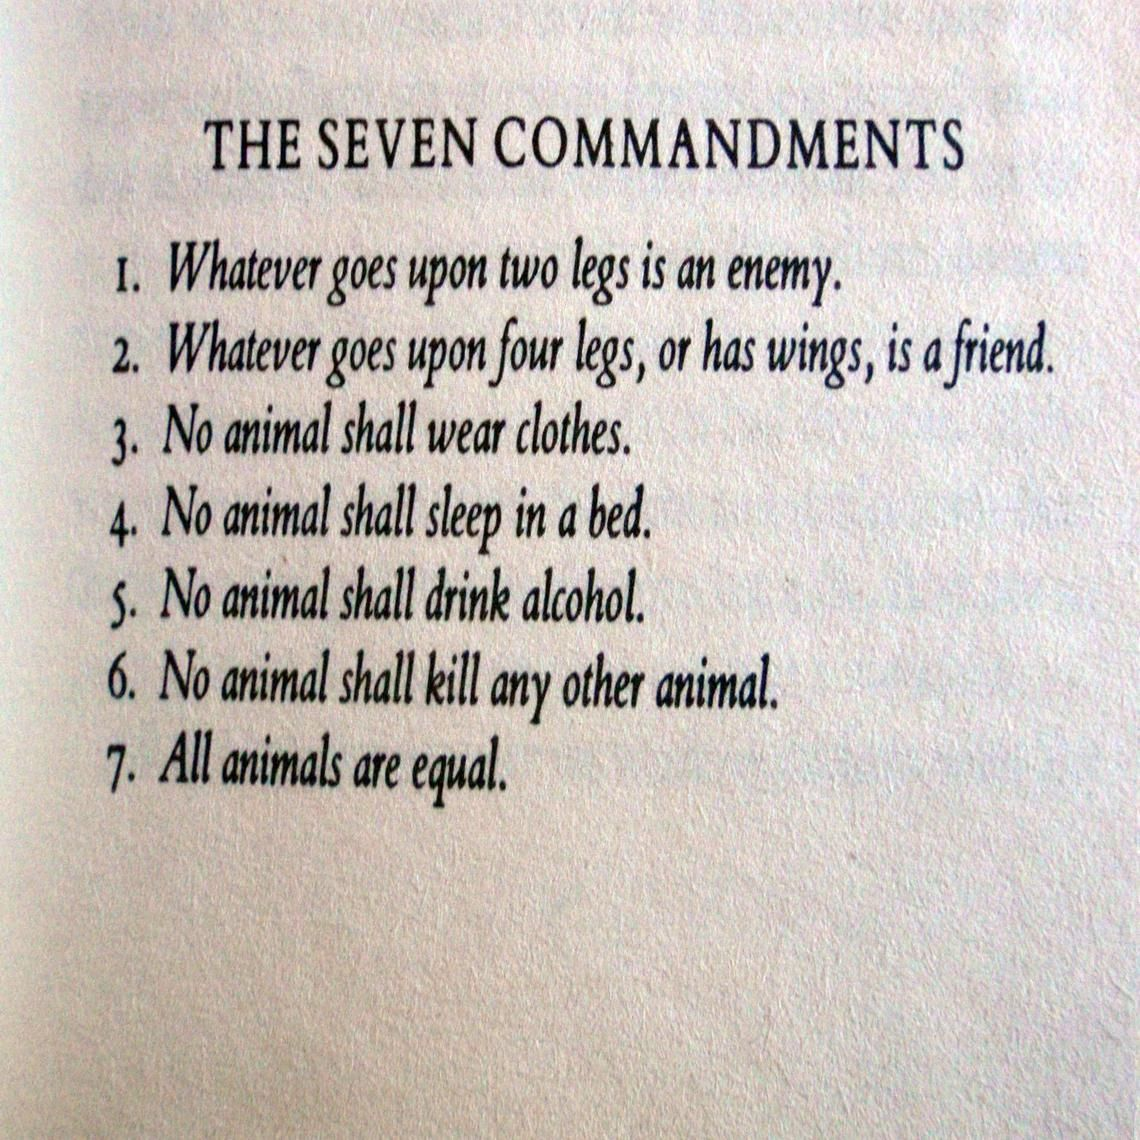 Animal Farm Quotes Entrancing Week 1921George Orwell's Animal Farm The 7 Commandments